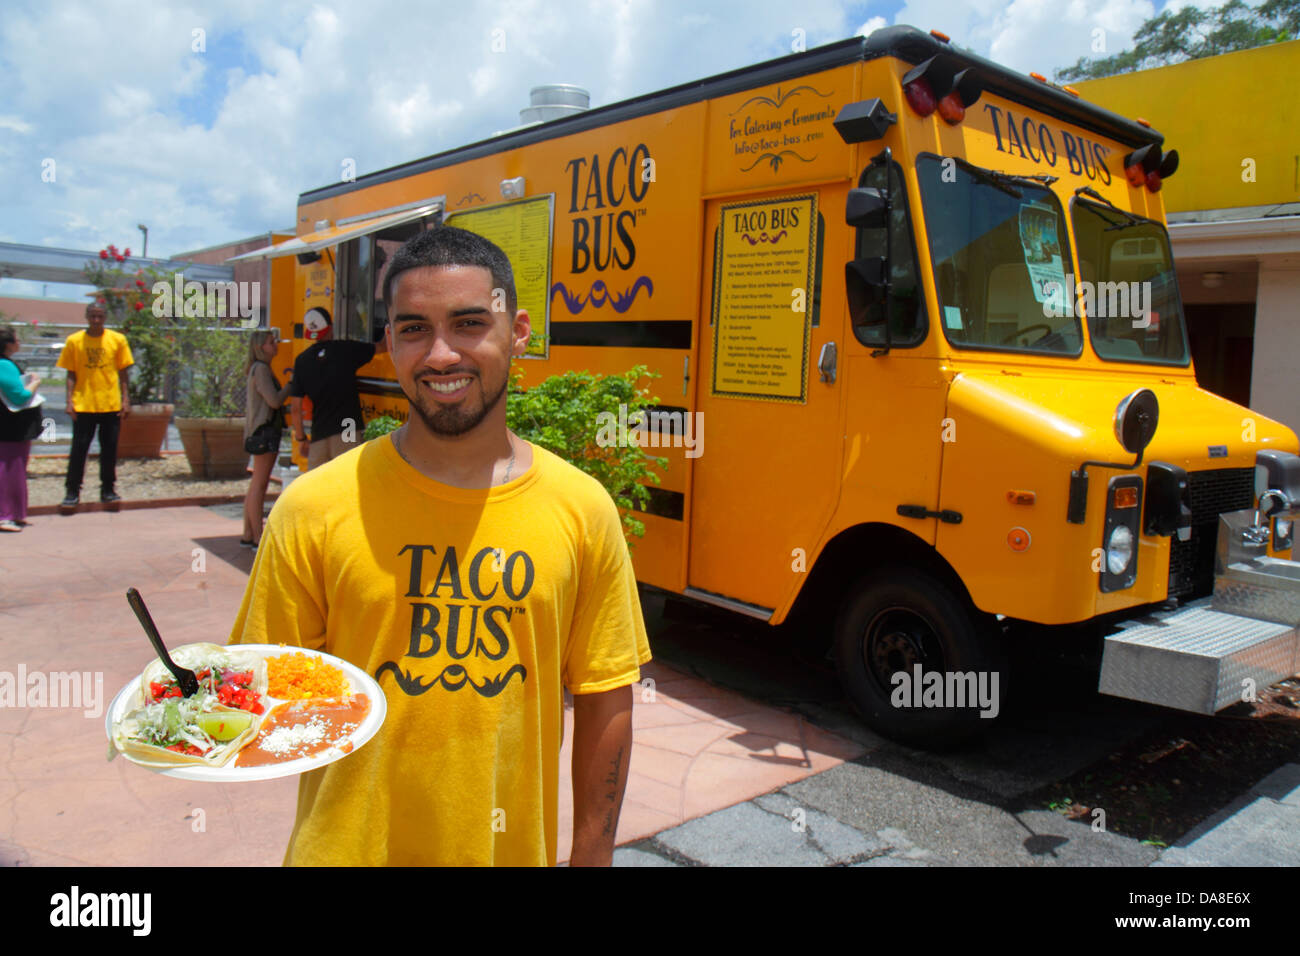 florida-saint-st-petersburg-taco-bus-authentic-mexican-food-truck-DA8E6X.jpg (1300×956)